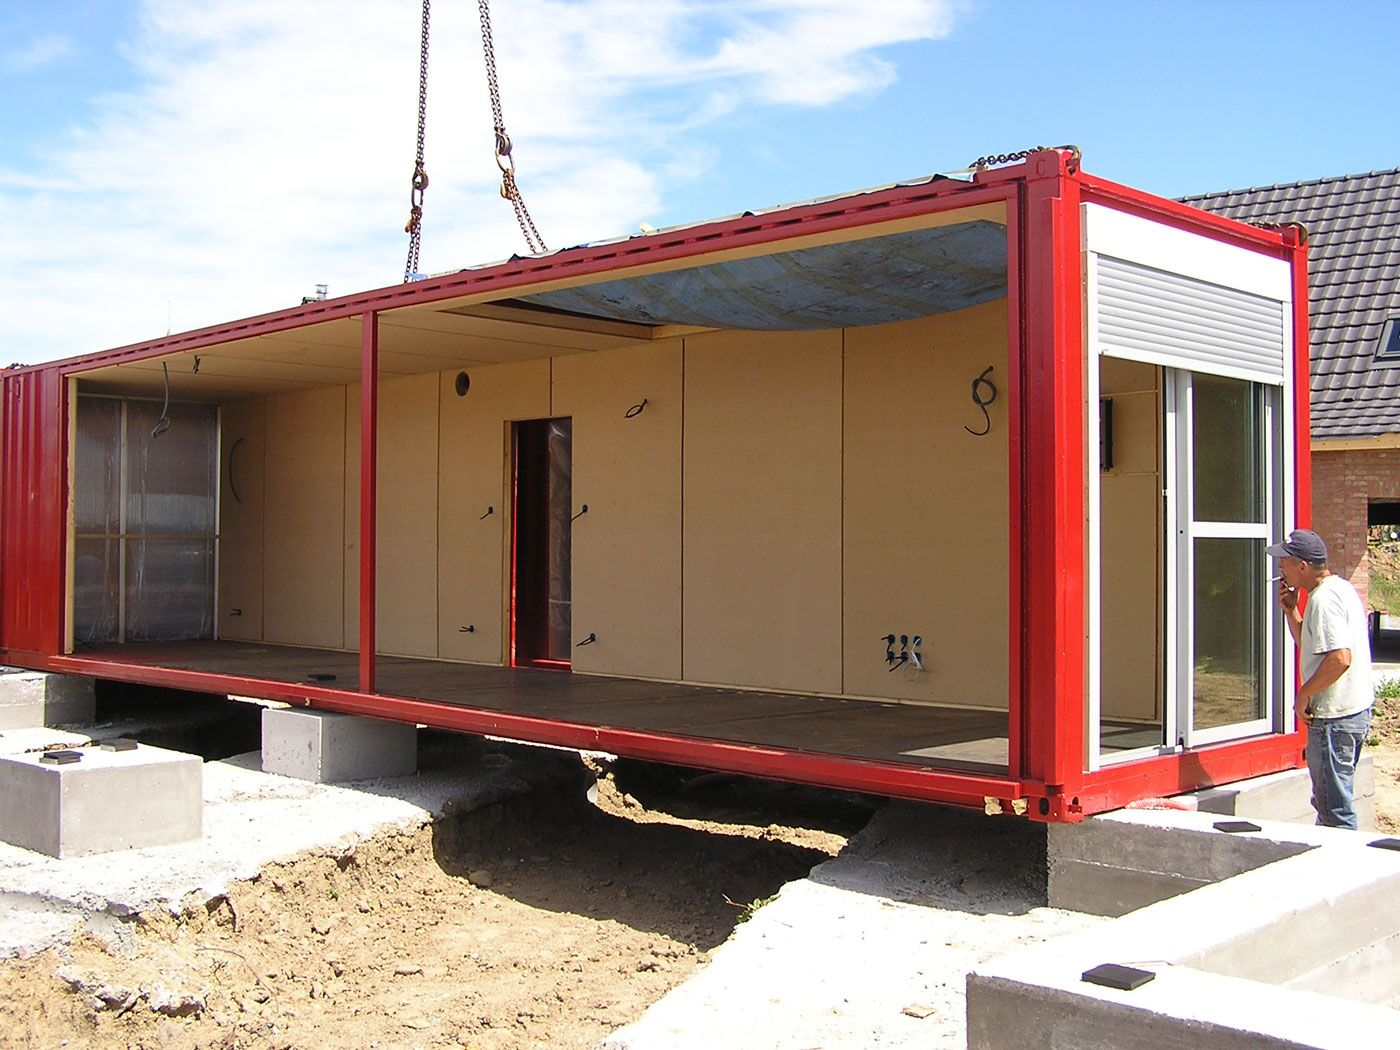 168 best container homes images on pinterest | shipping containers